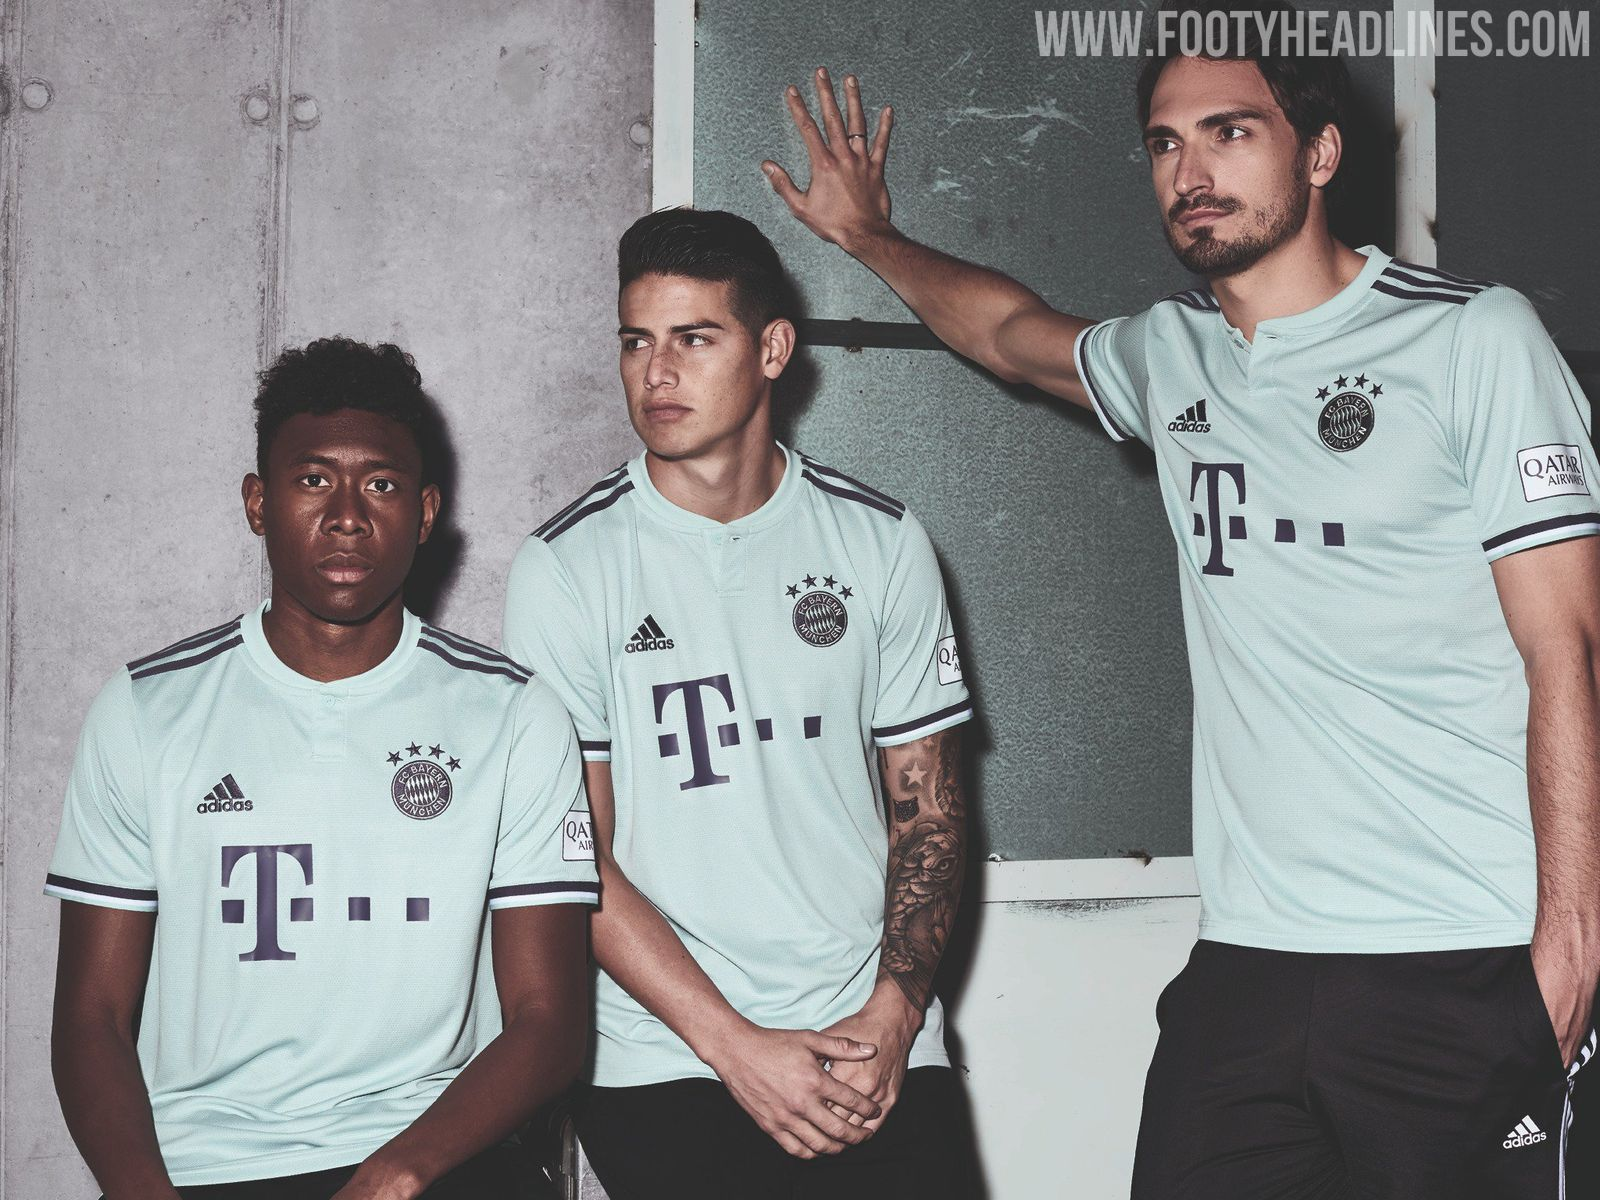 872921f2966 The new Bayern Munich 2018-2019 away jersey introduces a totally new look  for the club